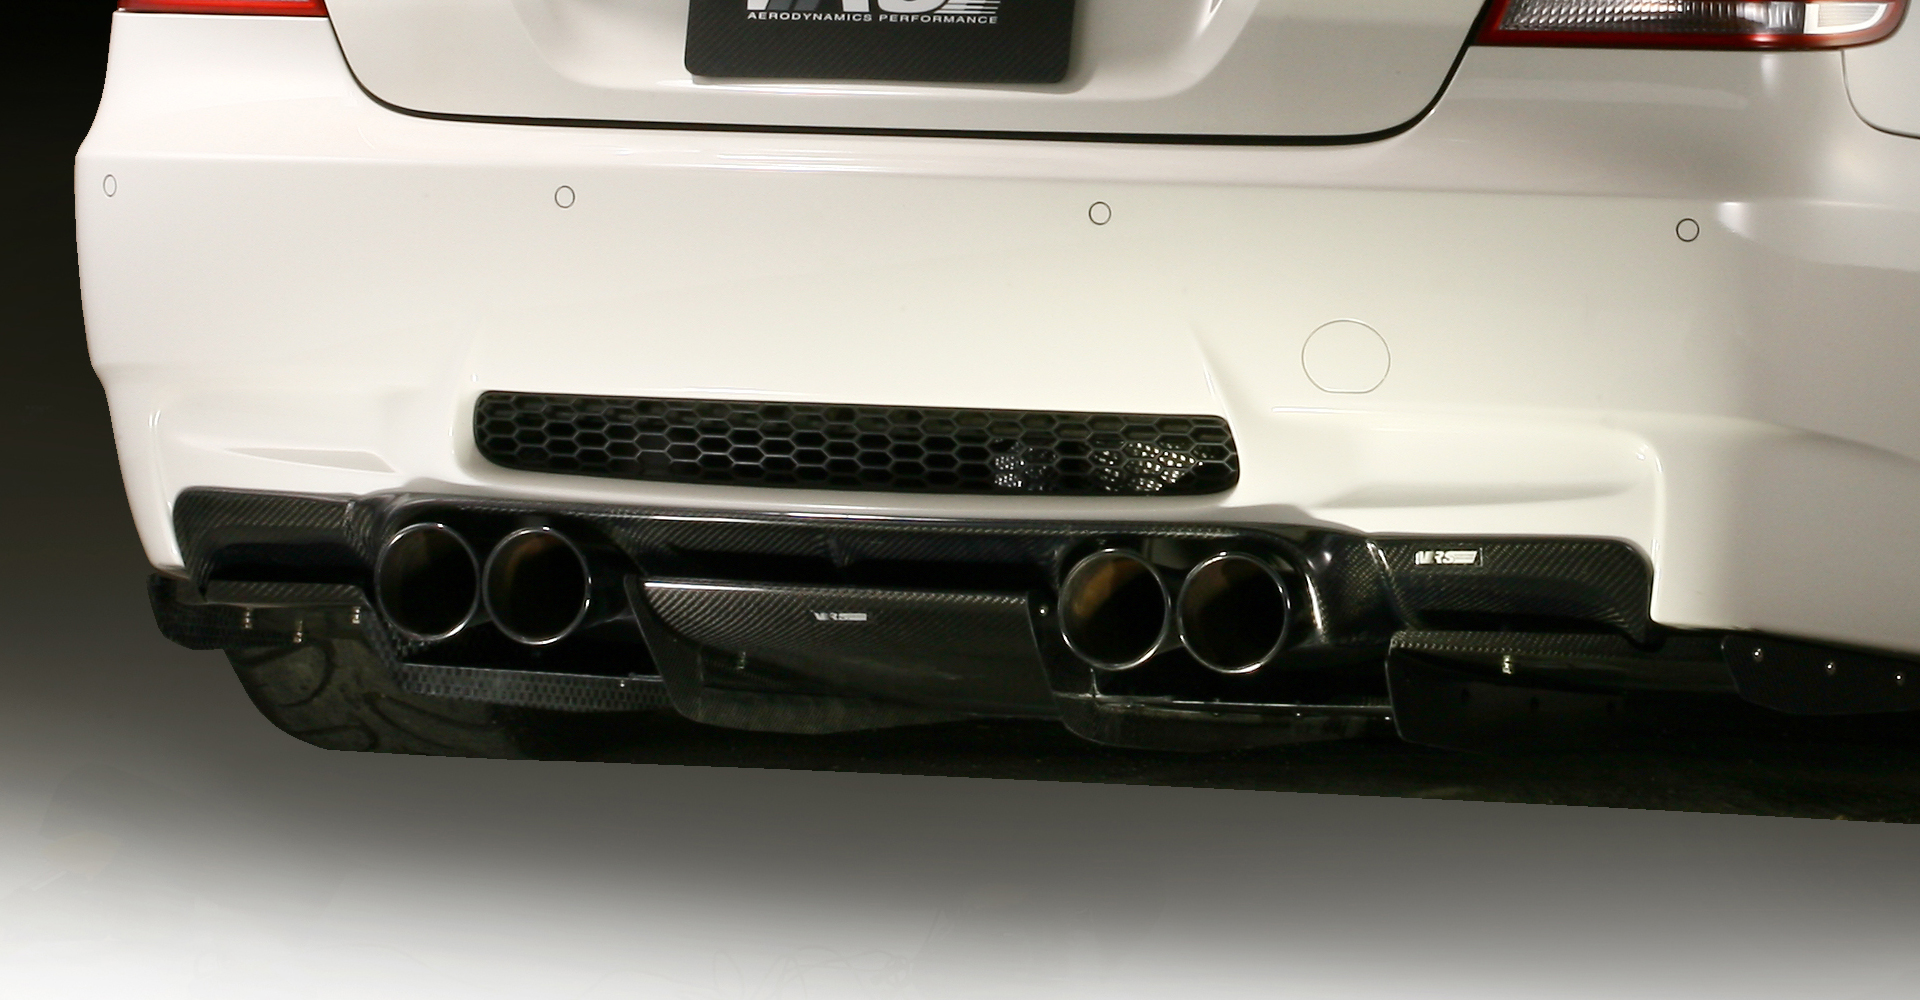 Vrs Bmw E92 M3 Coupe Rear Diffuser System 1